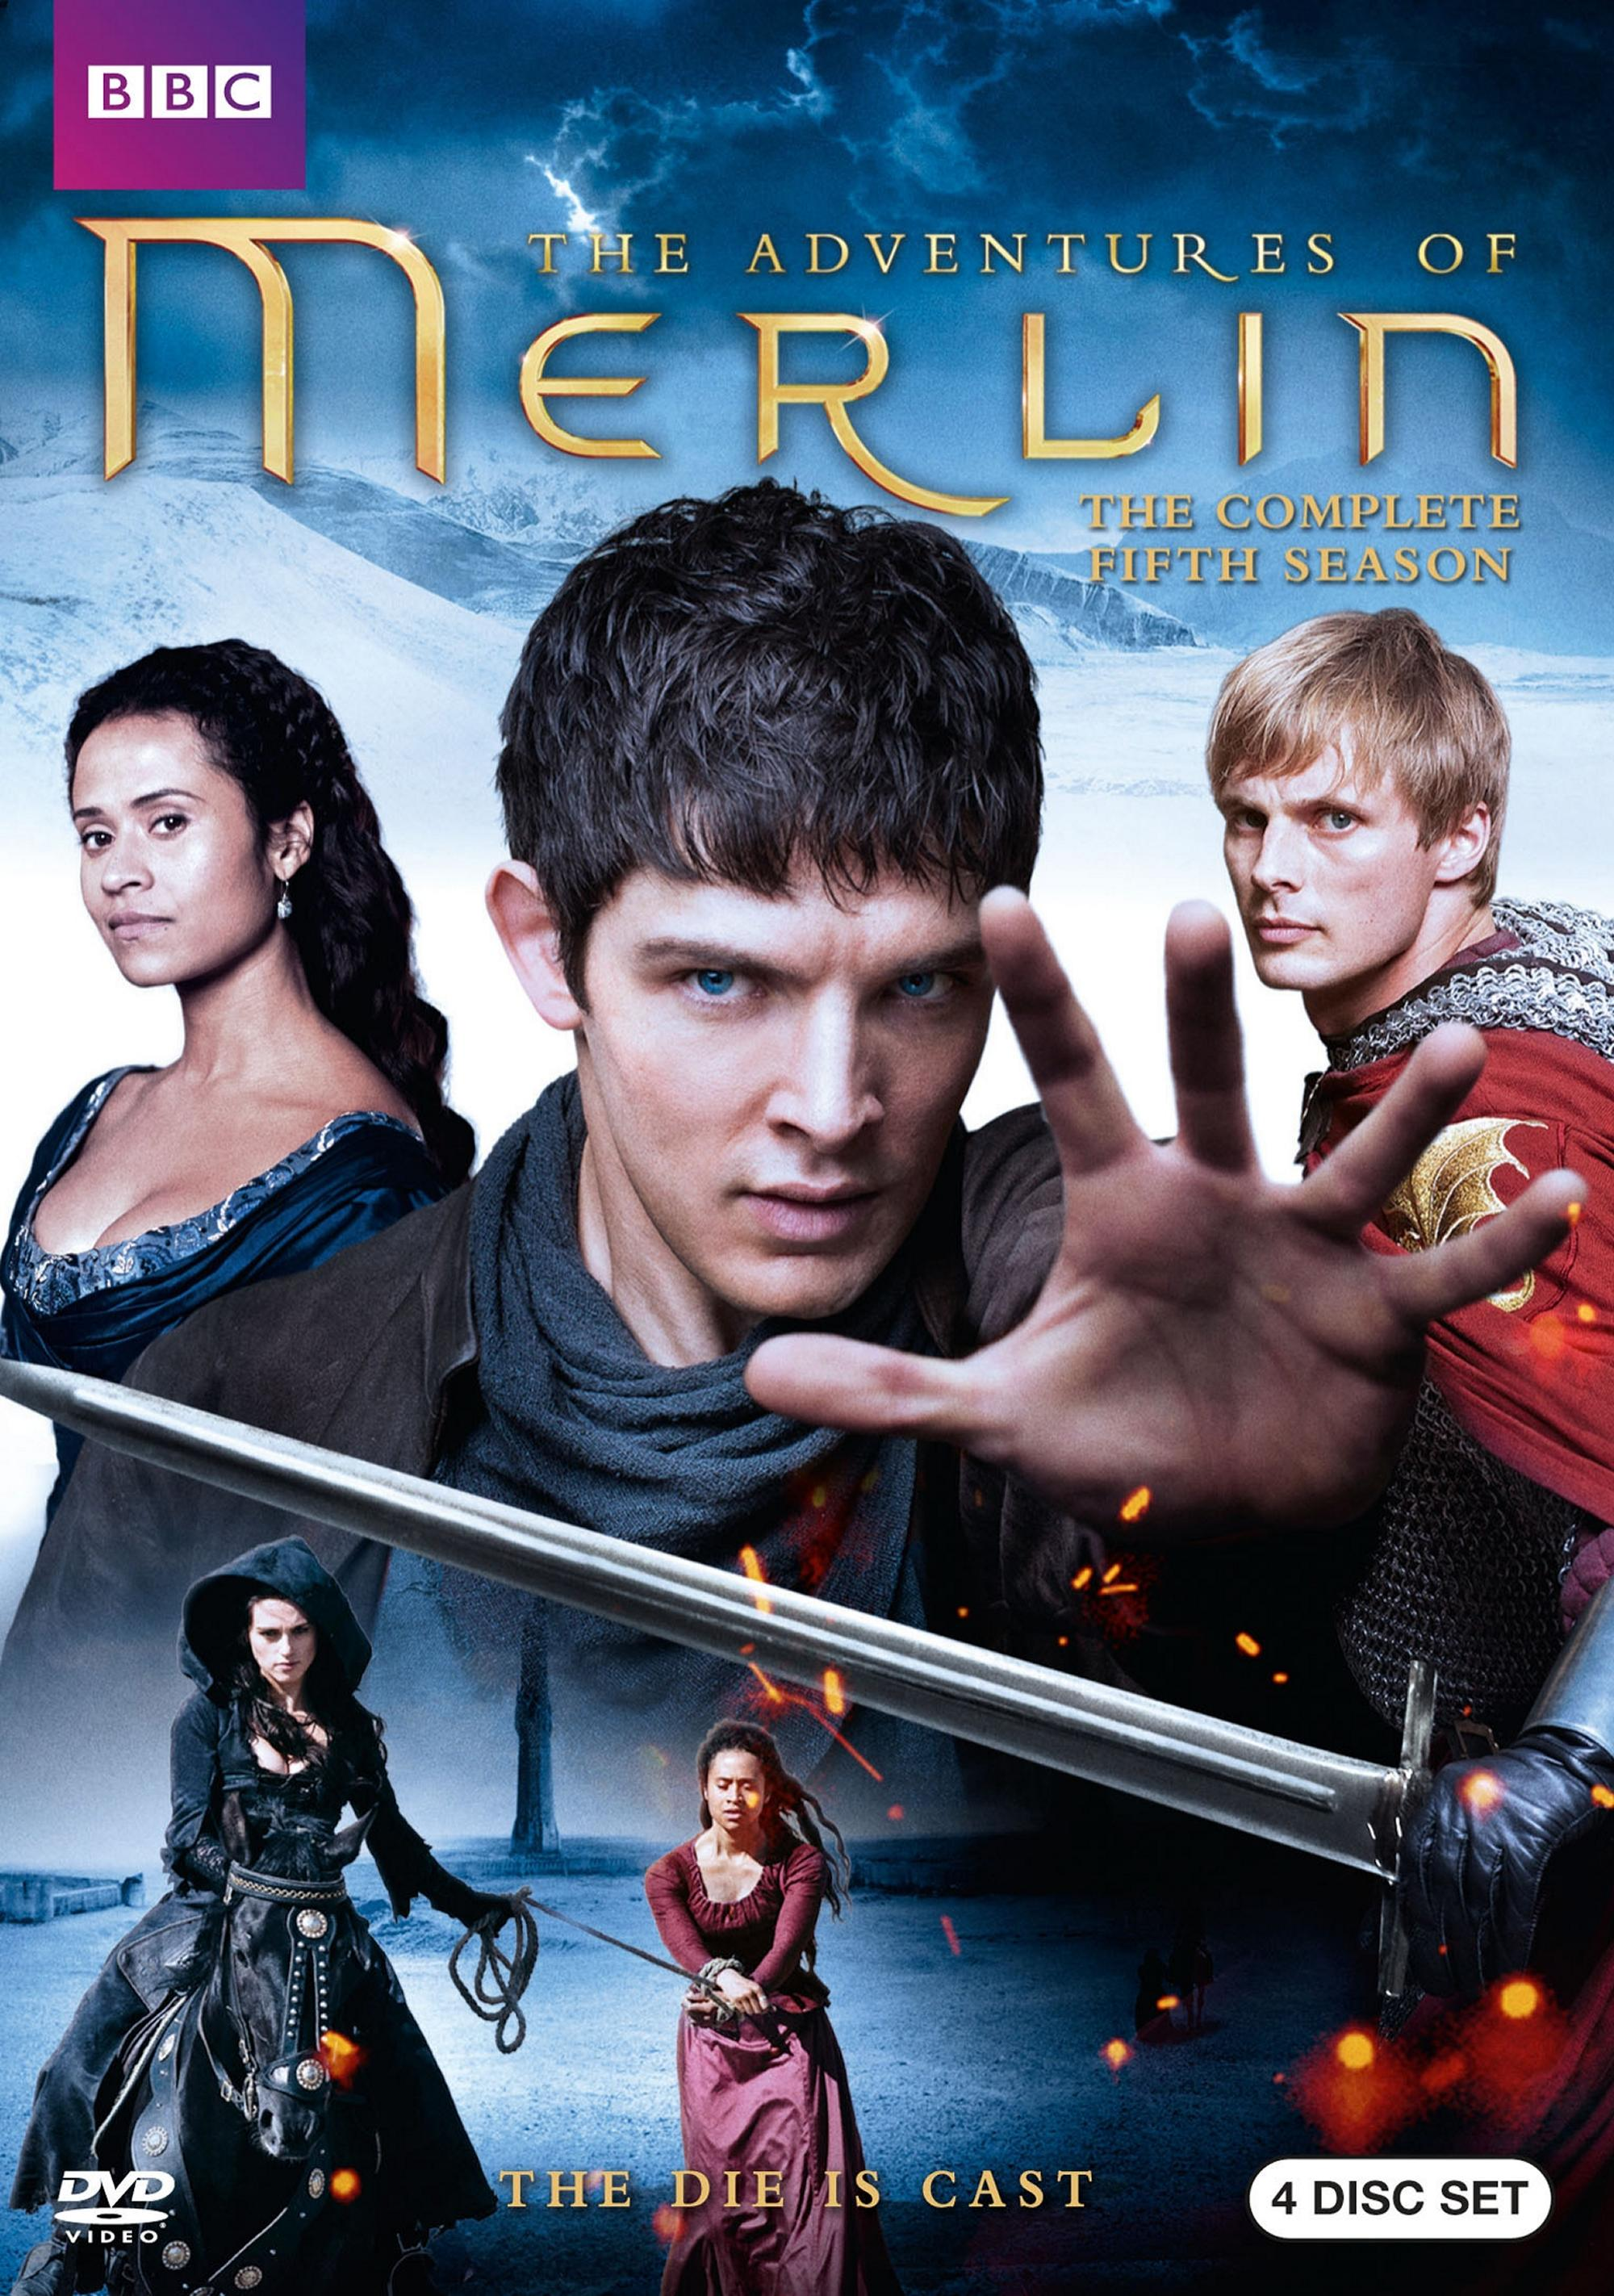 Merlin: The Complete Fifth Season (DVD)